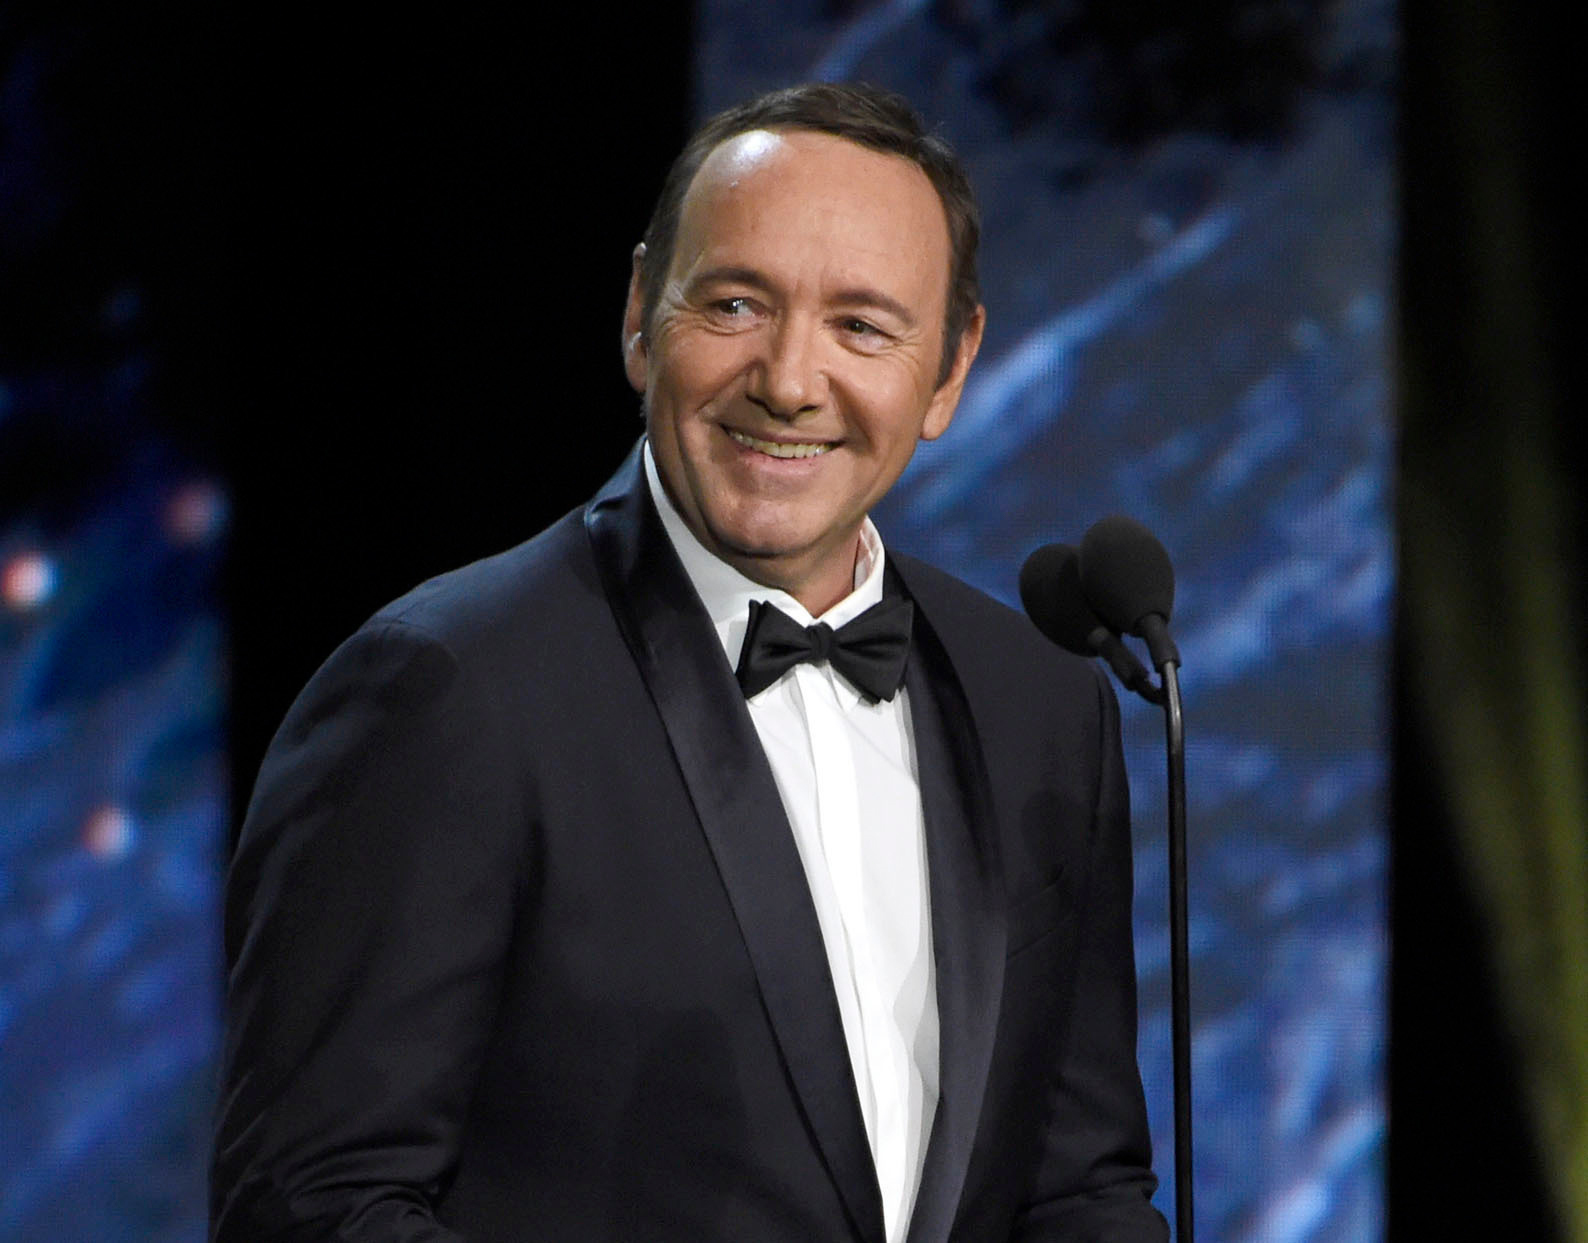 FILE - In this Oct. 27, 2017, file photo, Kevin Spacey presents the award for excellence in television at the BAFTA Los Angeles Britannia Awards.